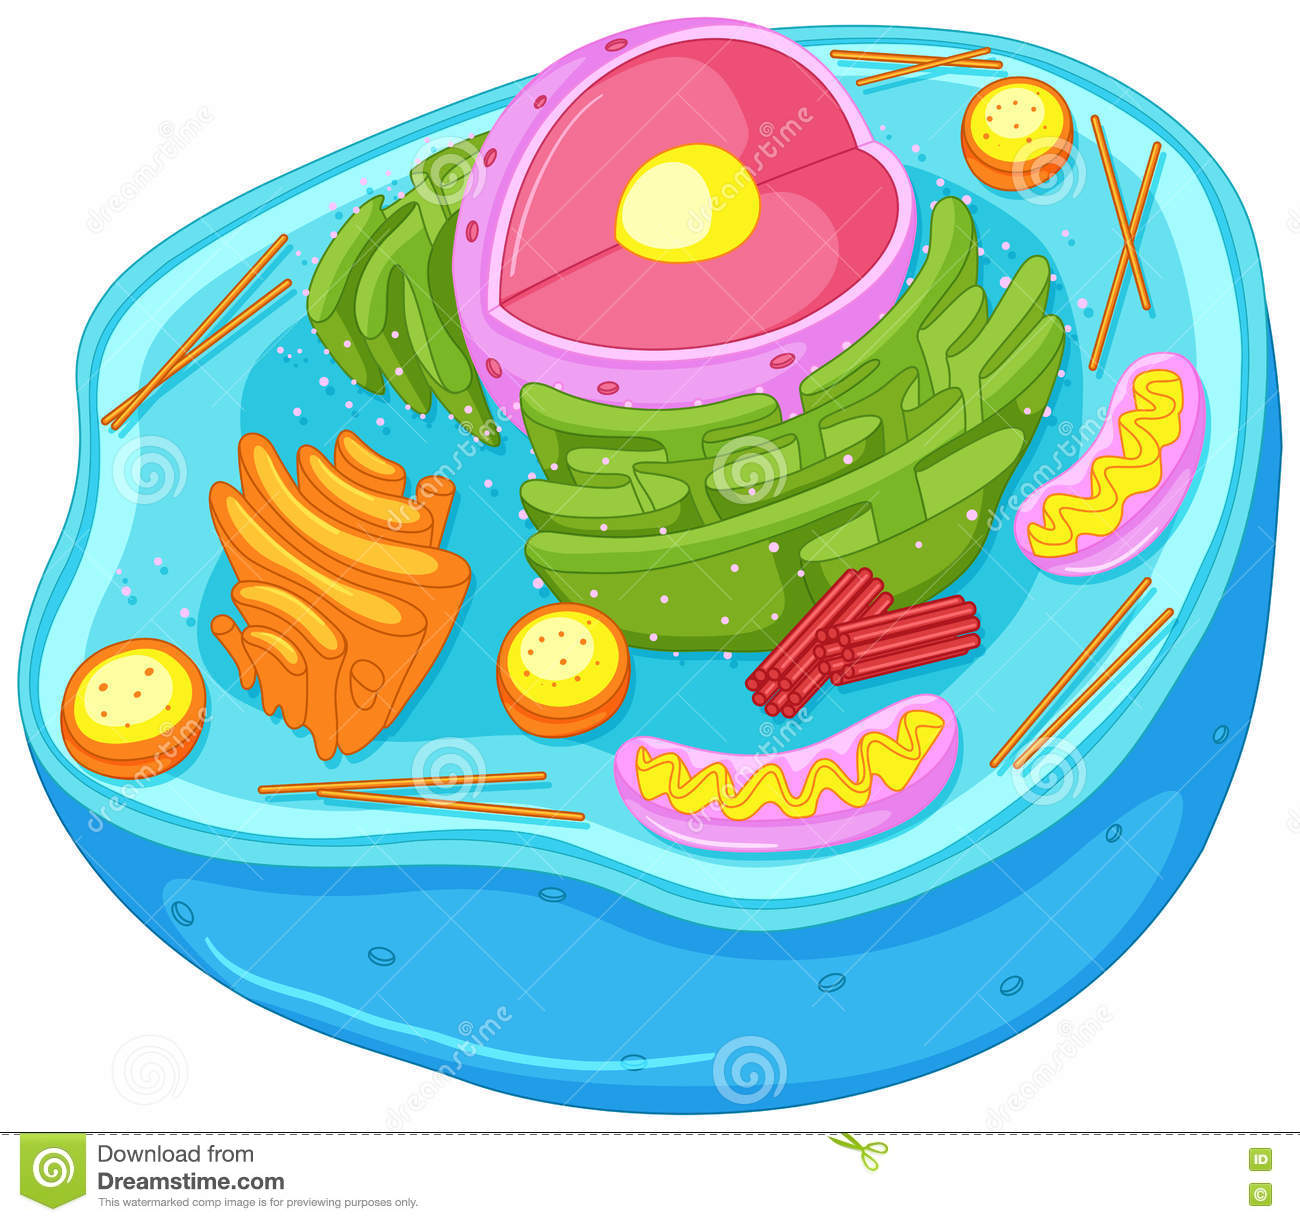 Diagram showing anatomy of animal cell stock vector illustration close up diagram of animal cell stock photos ccuart Gallery